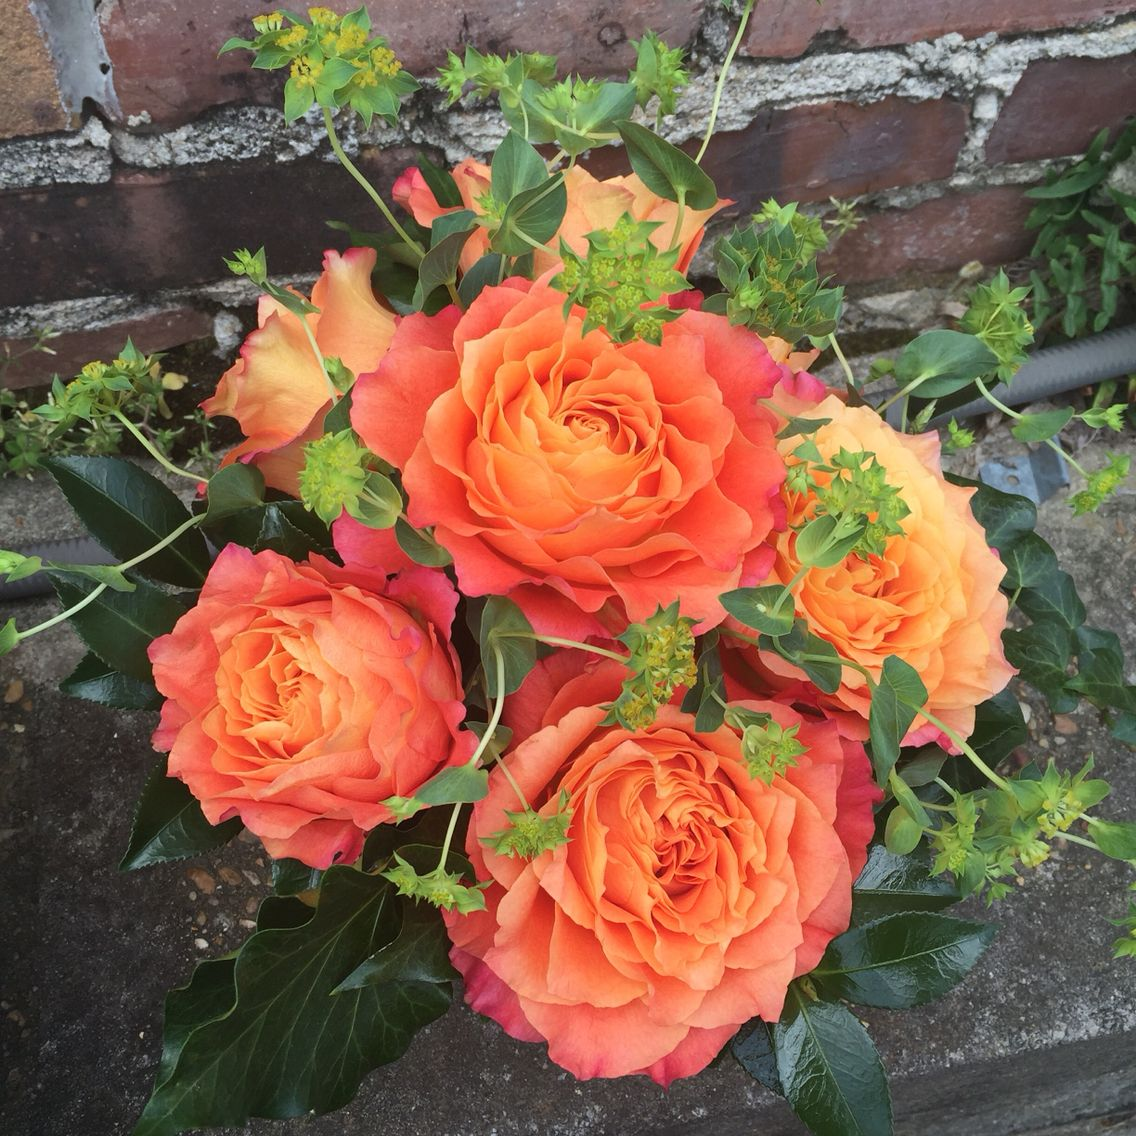 In love with these Free Spirit roses! Everyday